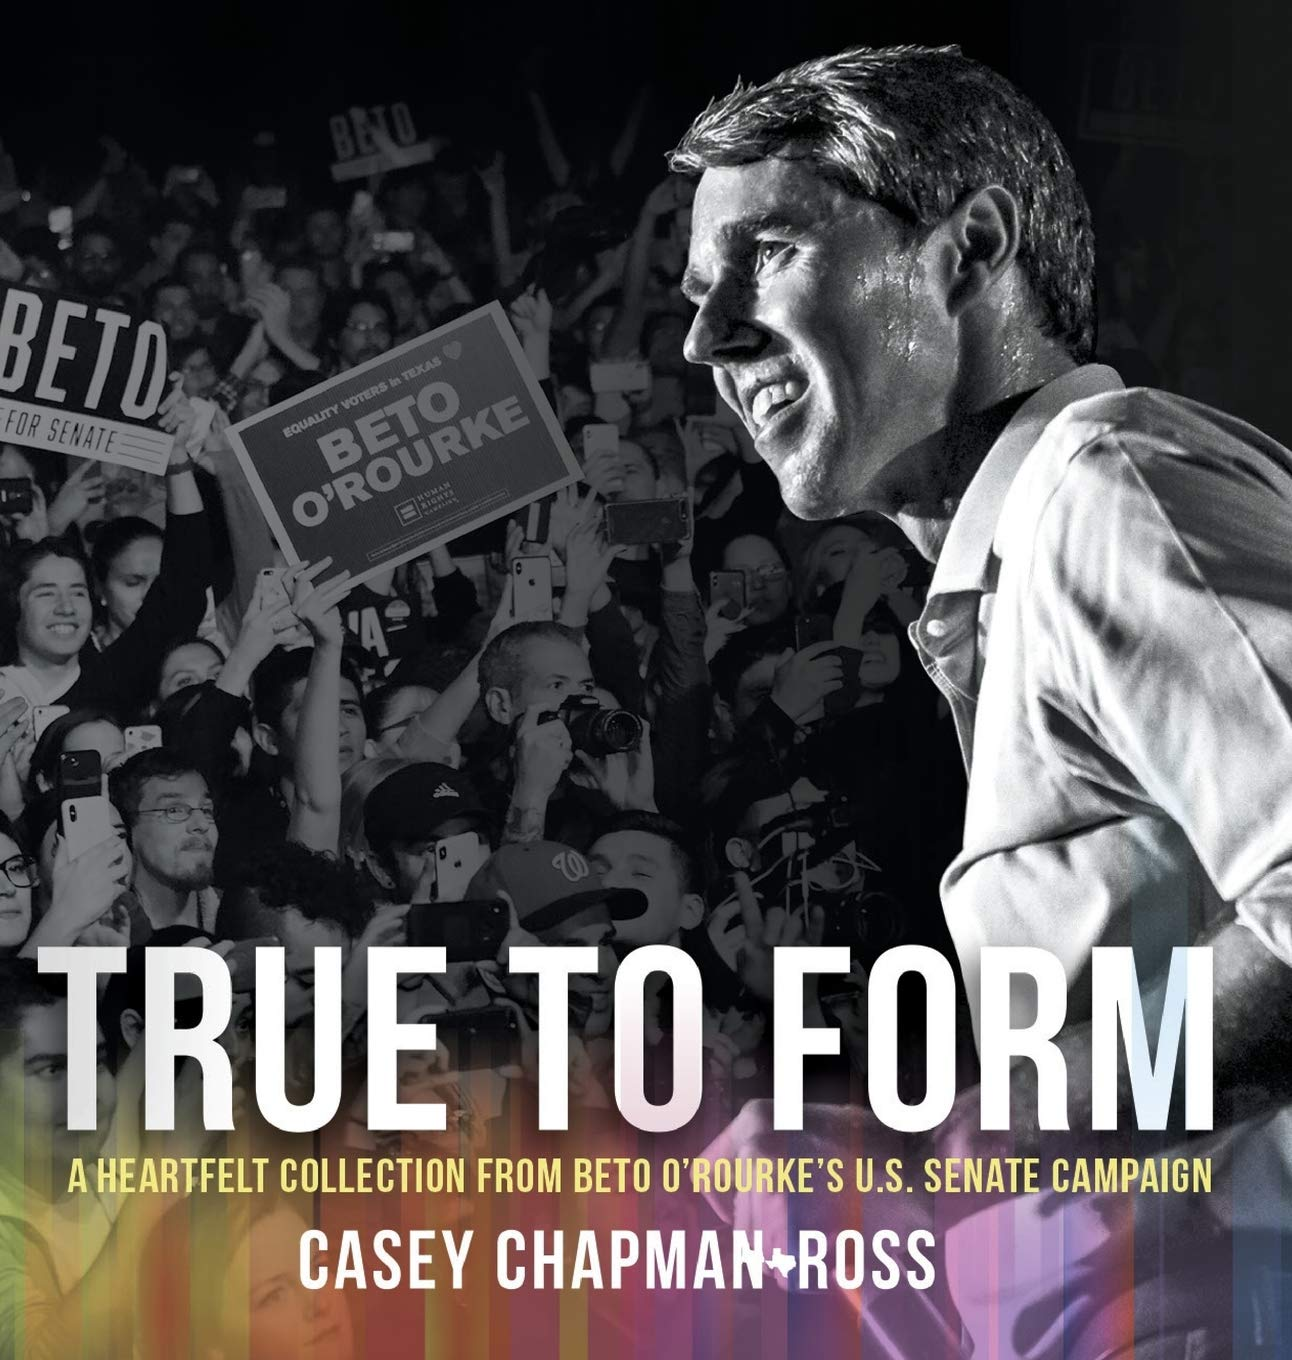 True To Form: A Heartfelt Collection From Beto O'Rourke's U.S. Senate Campaign